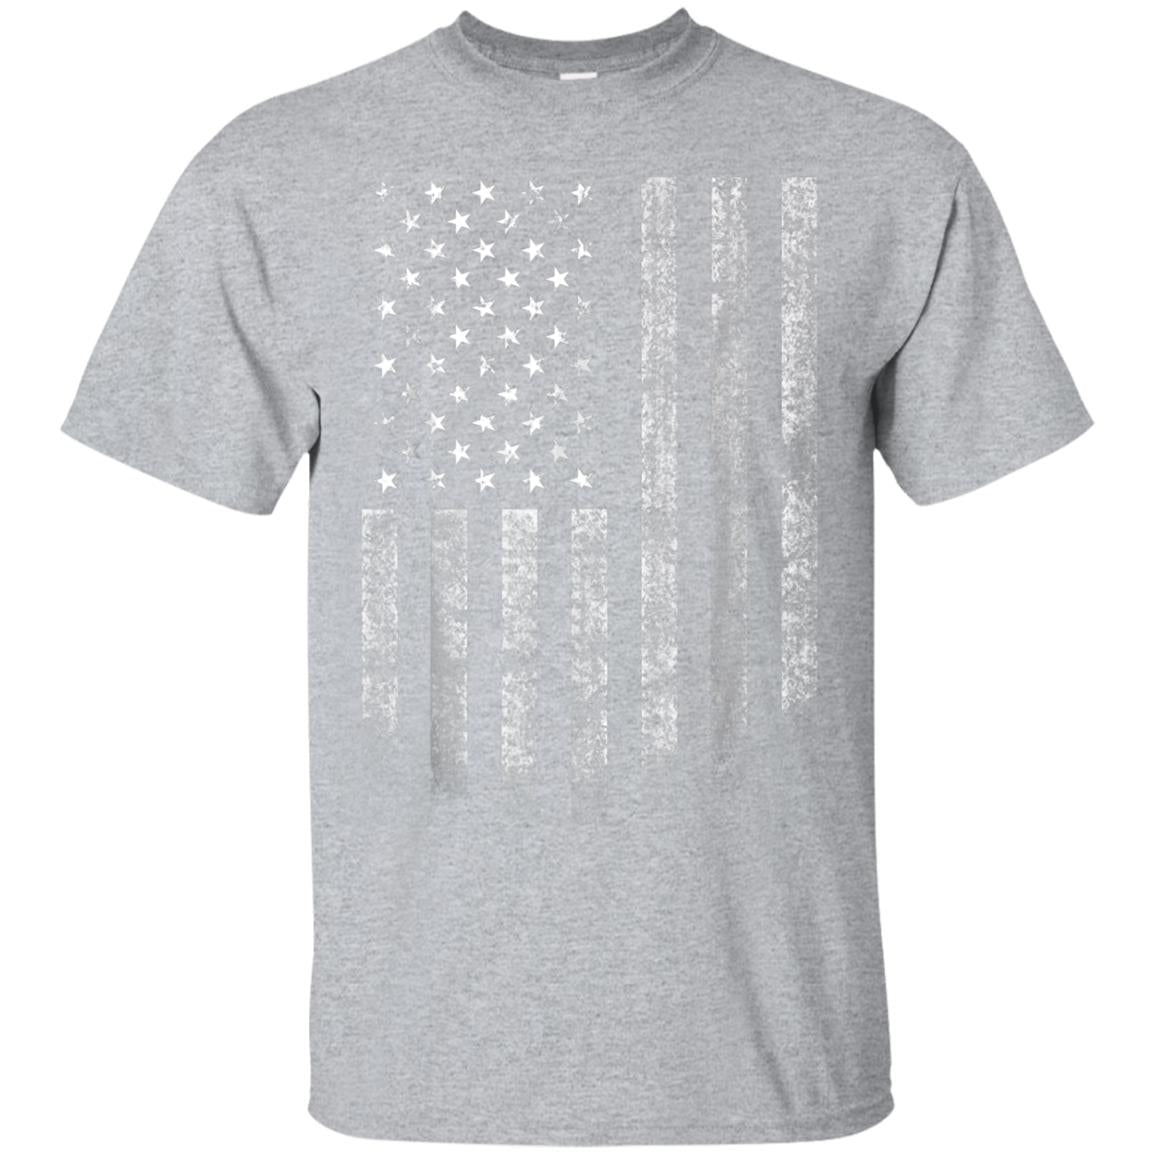 American Flag T-Shirt United States of America USA Patriotic 99promocode